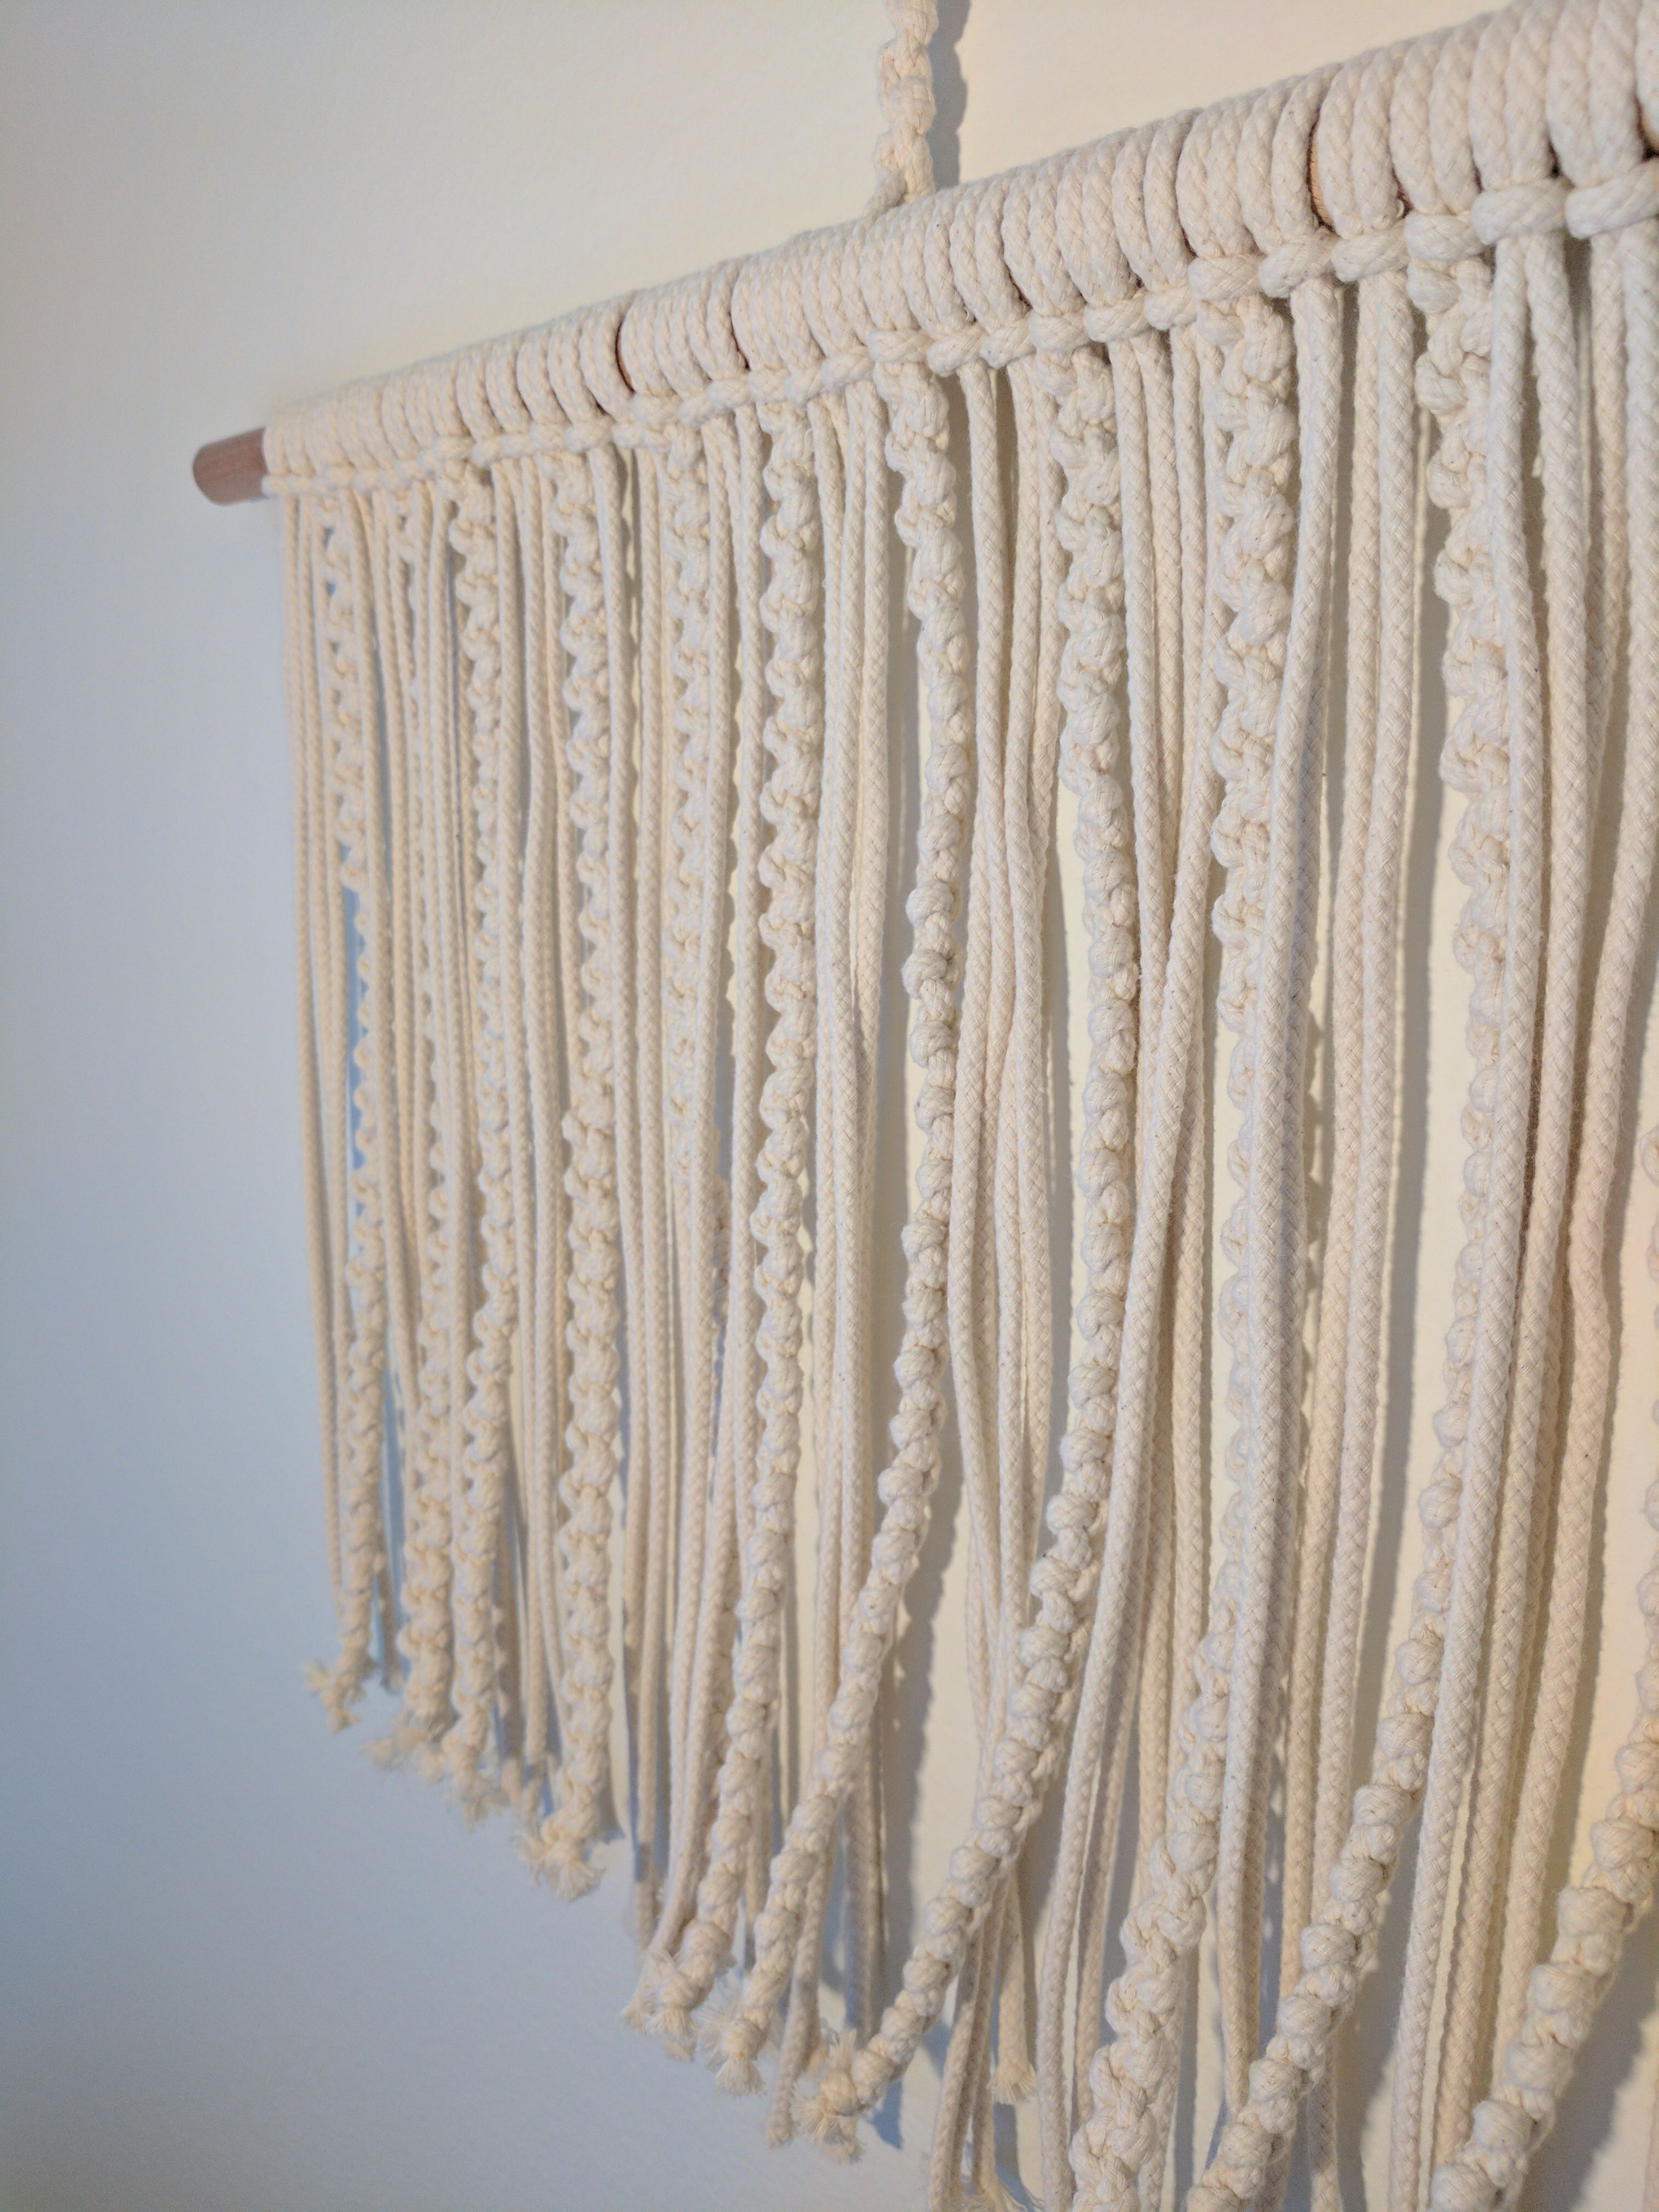 Hera snug macrame wall hanging approx x inches approx